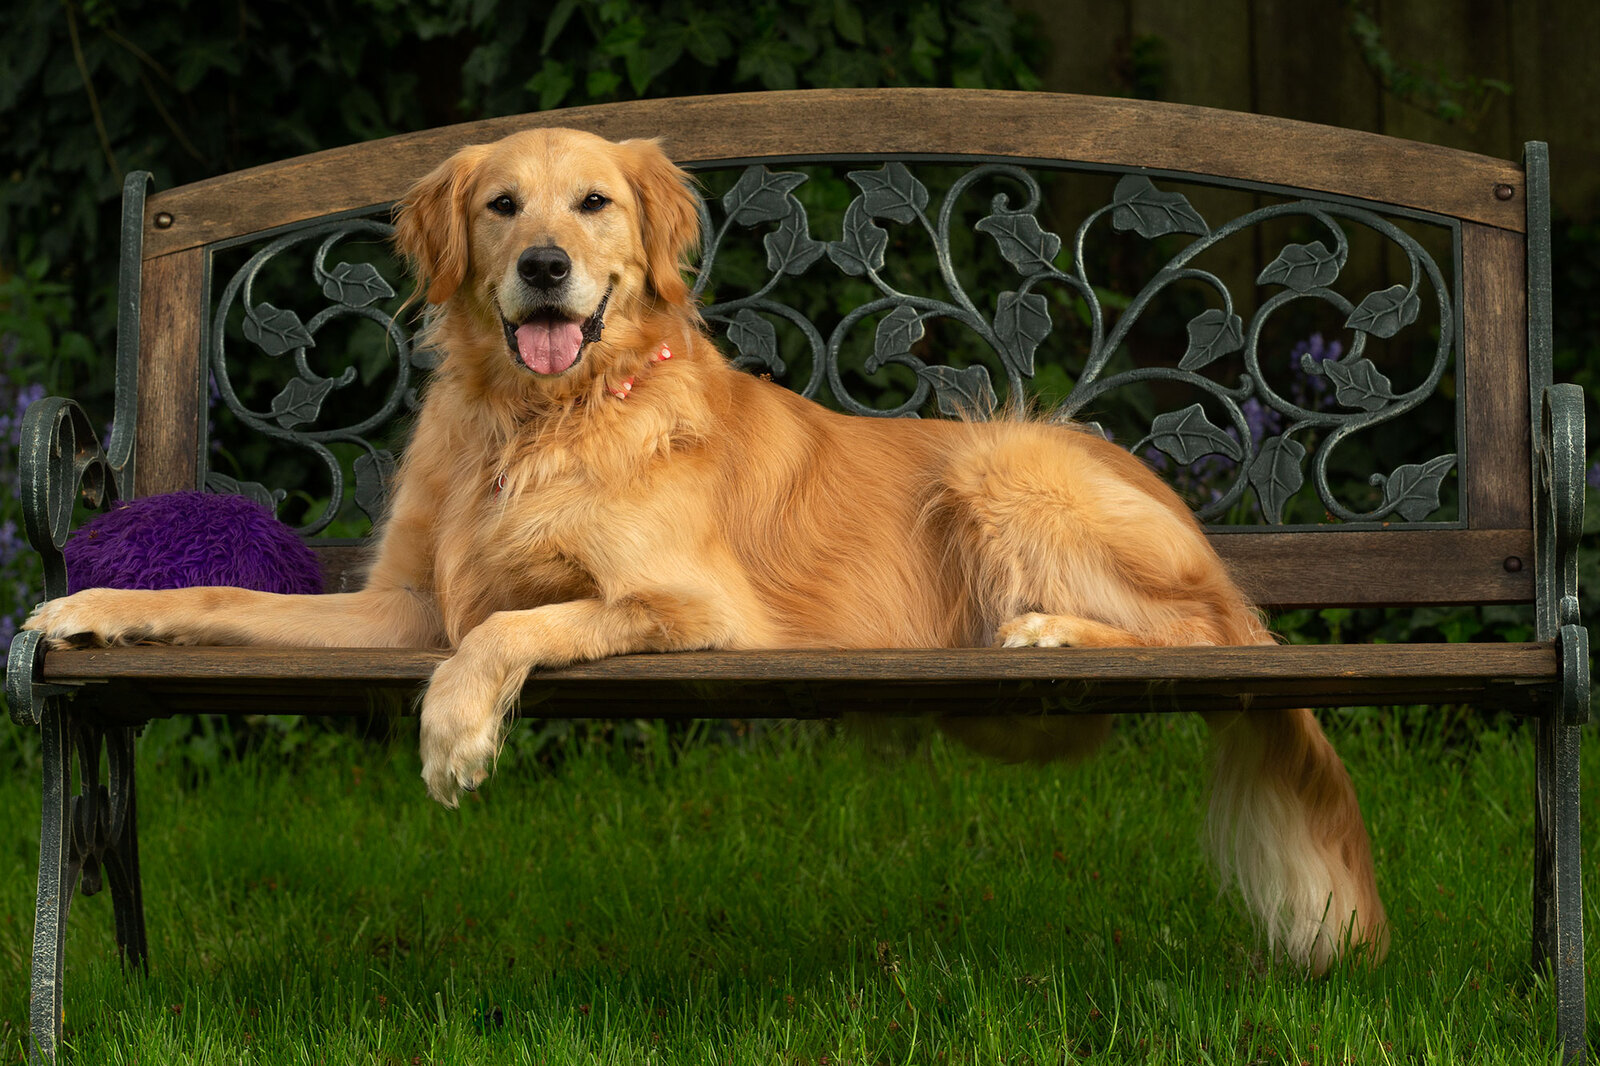 Golden retriever on bench